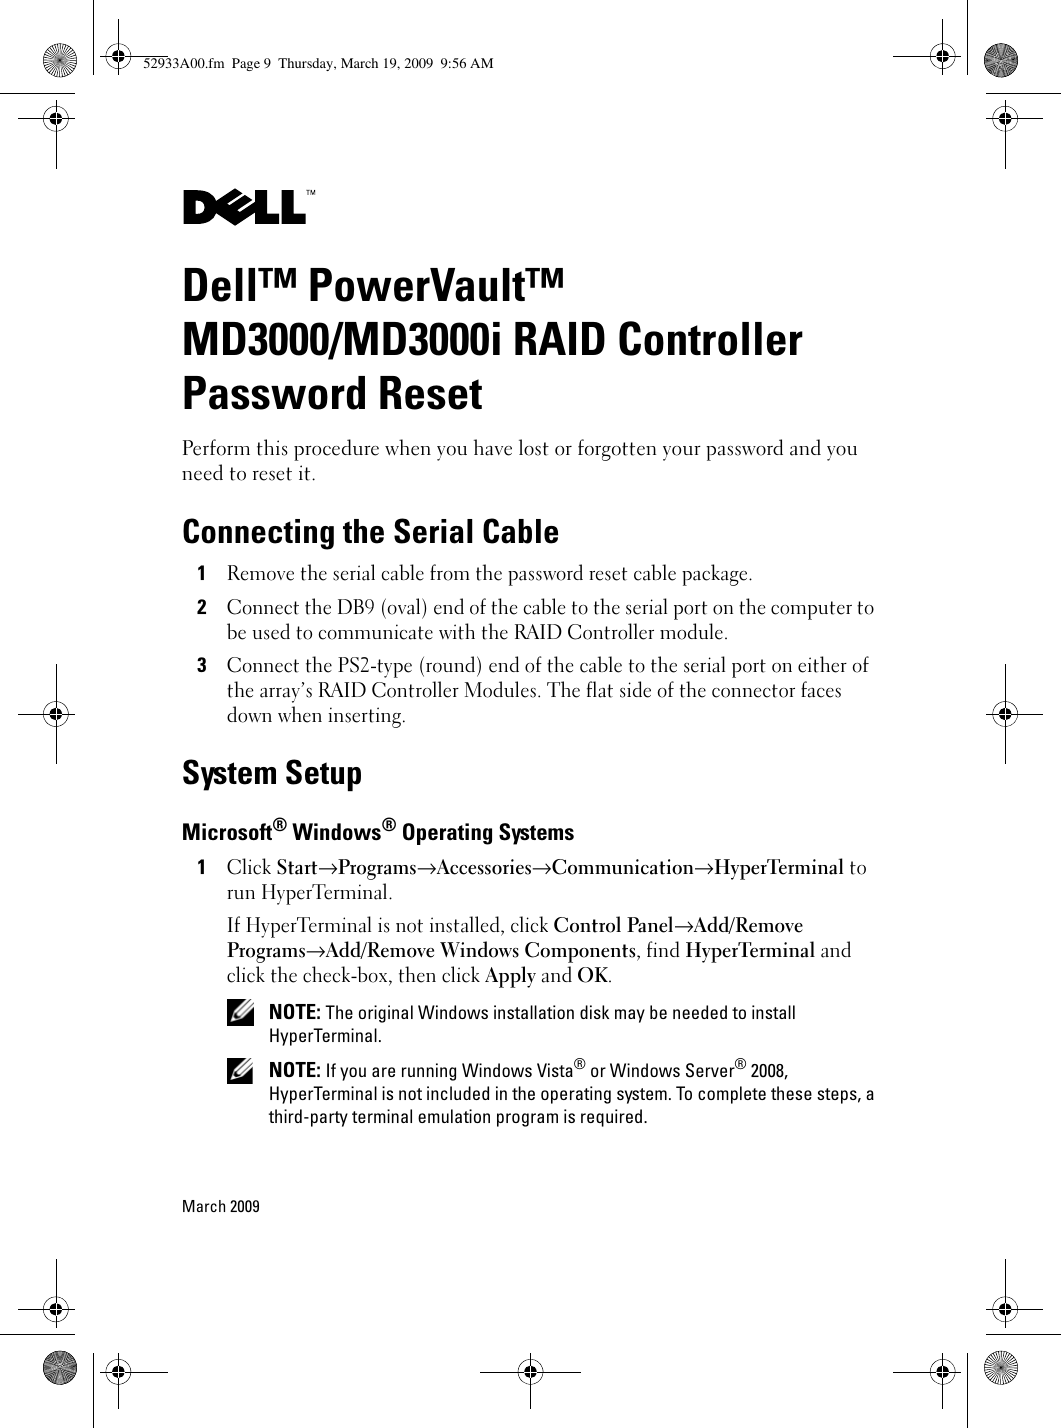 Dell™ PowerVault™ MD3000/MD3000i RAID Controller Password